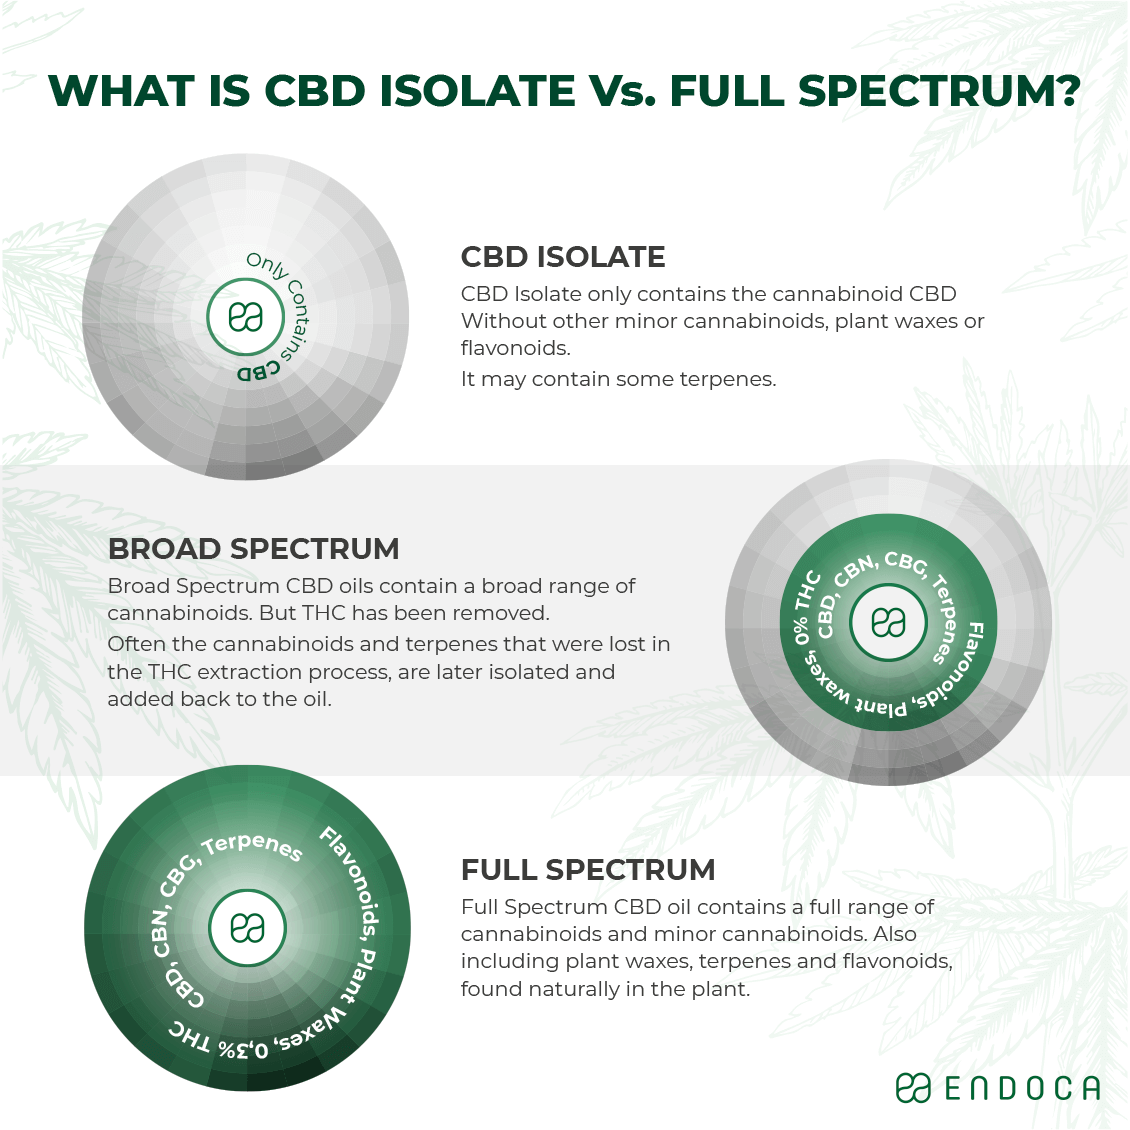 CBD isolate vs full spectrum CBD oil